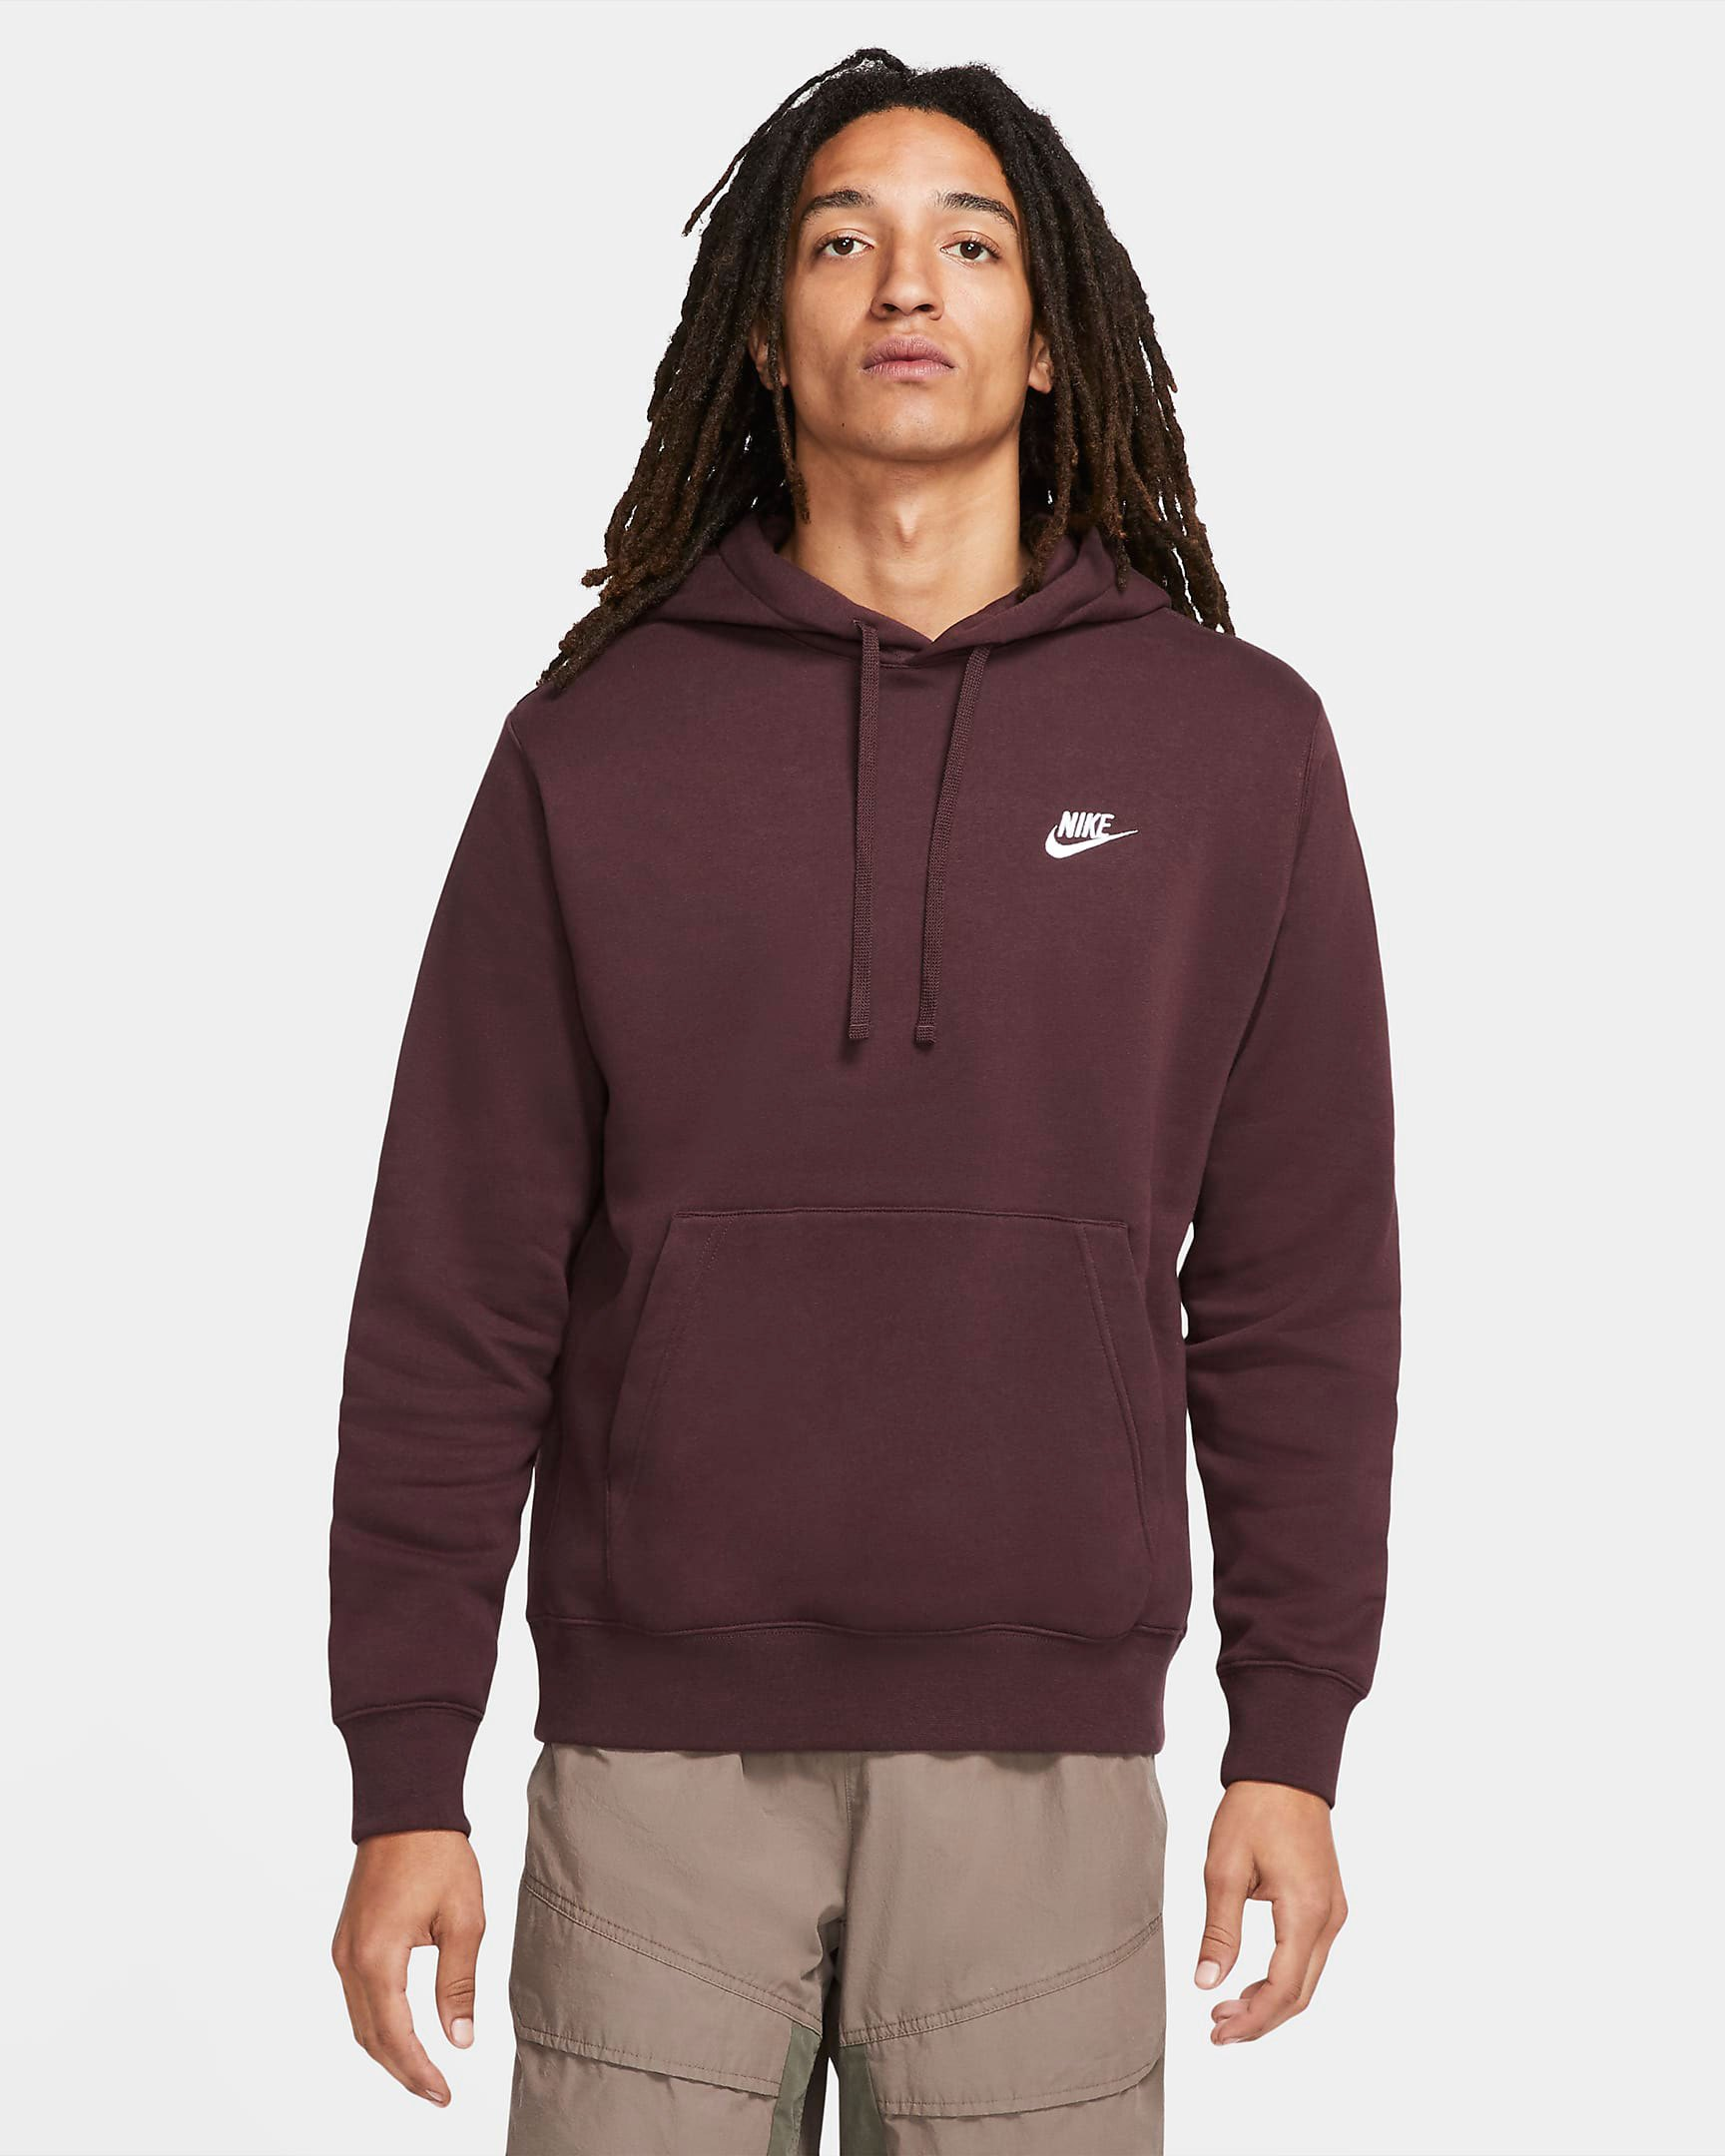 nike-club-fleece-hoodie-mahogany-brown-3